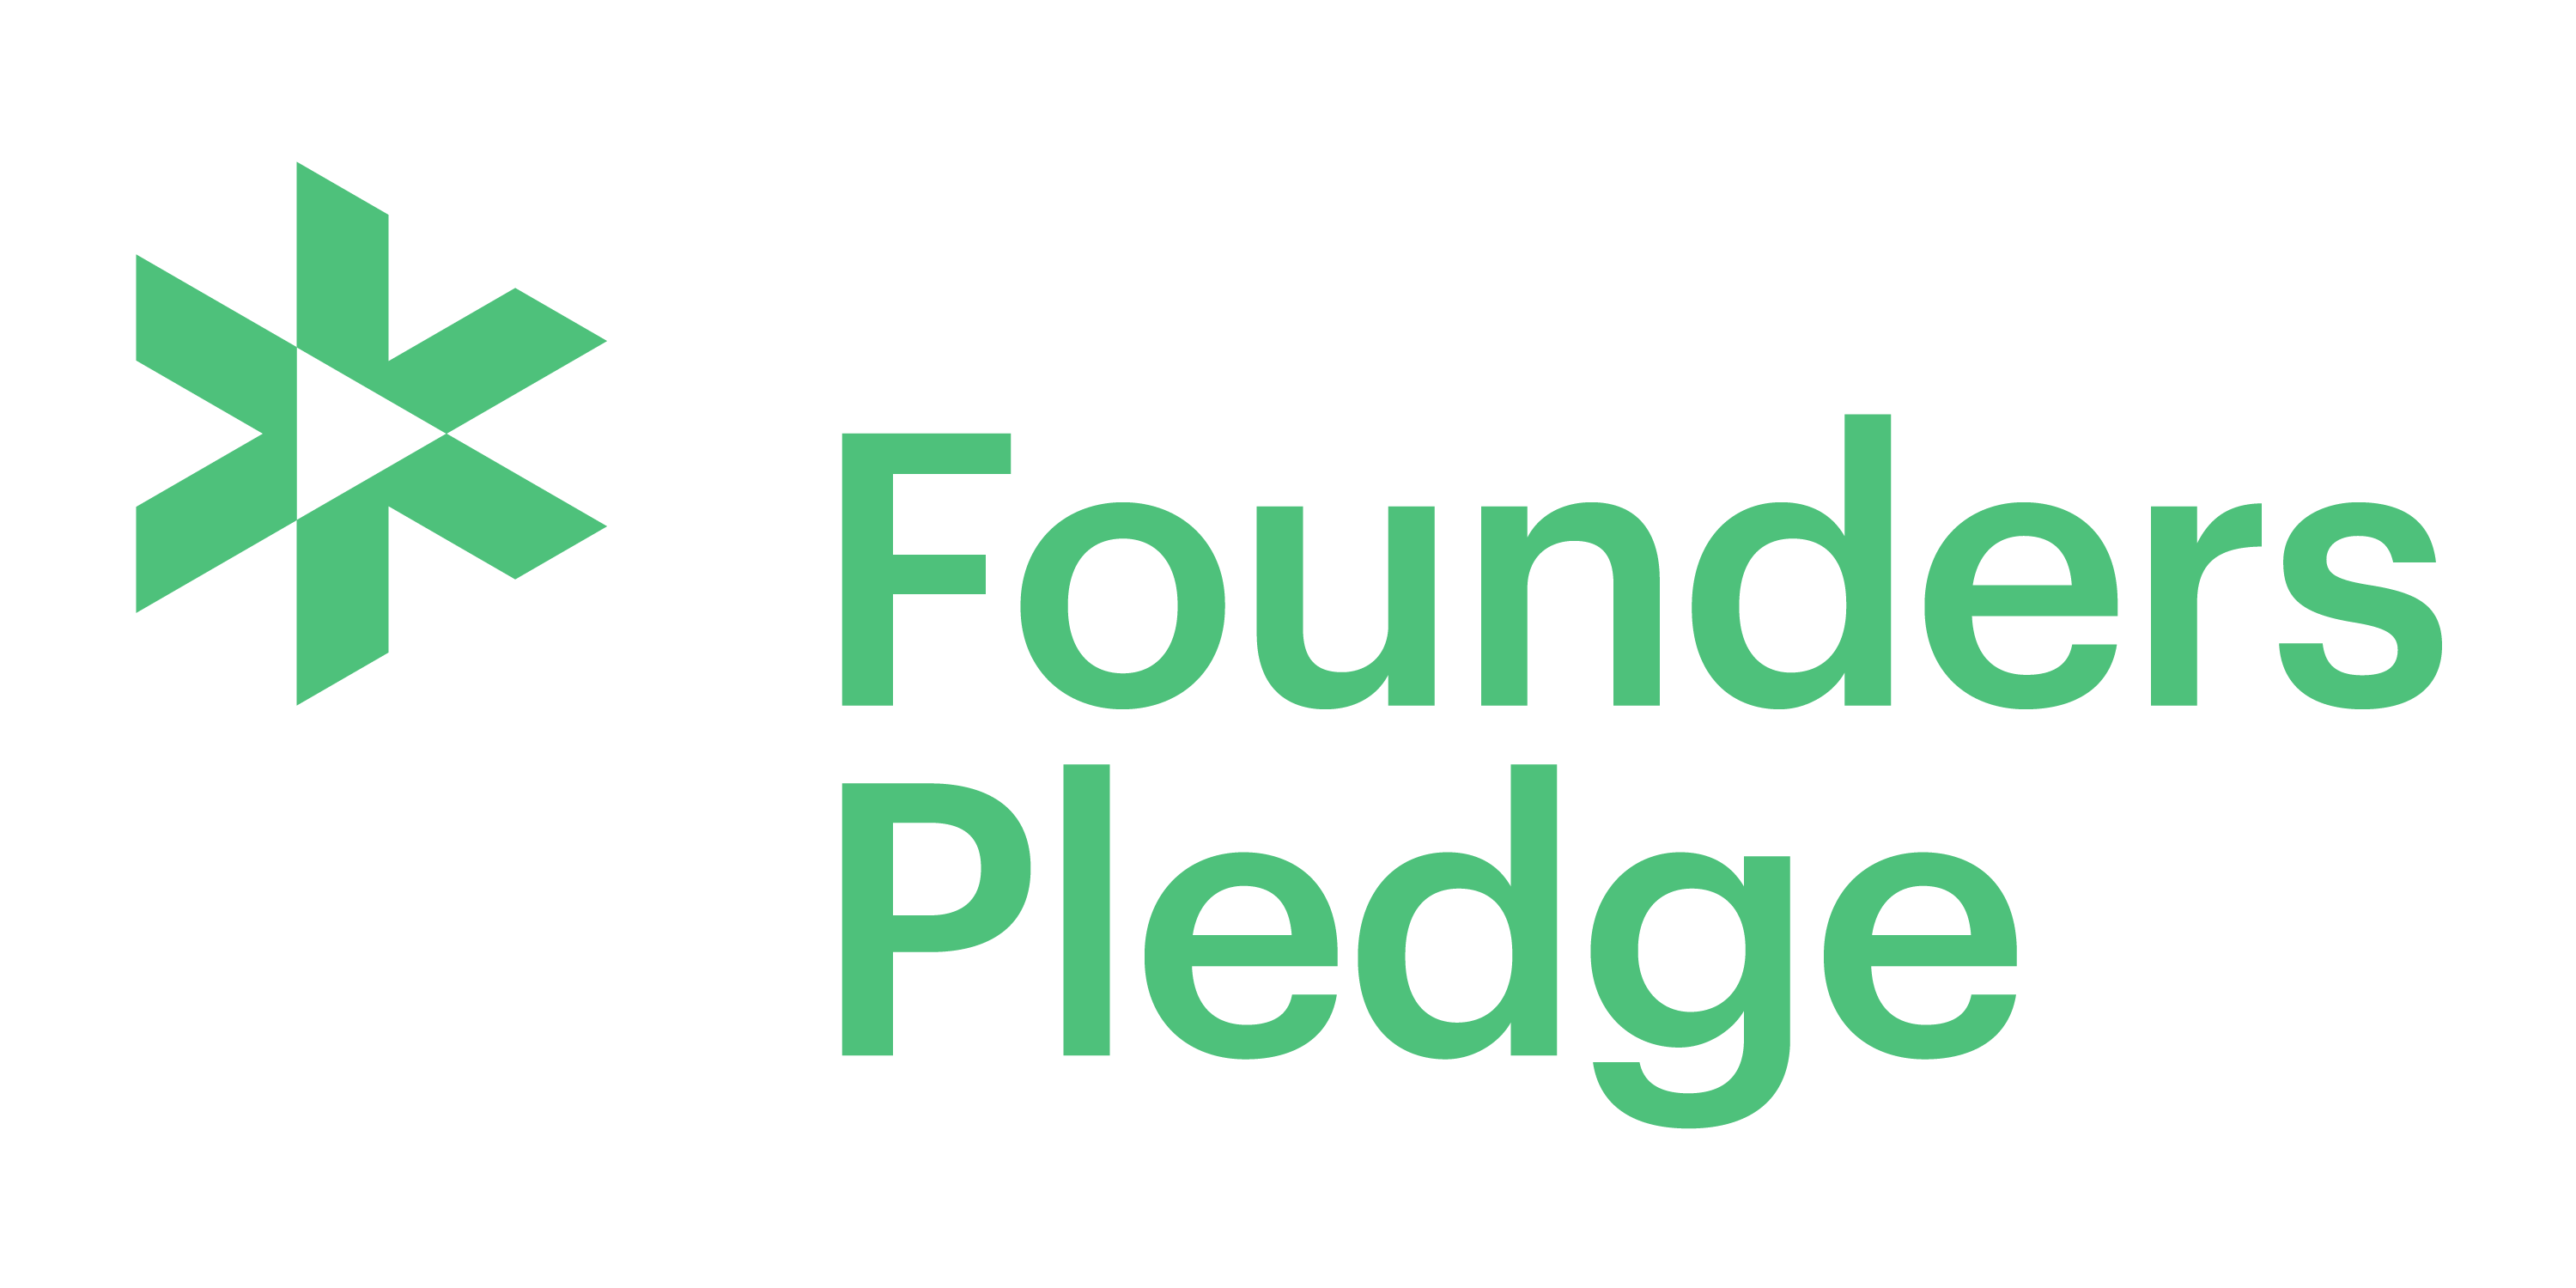 The Founders Pledge